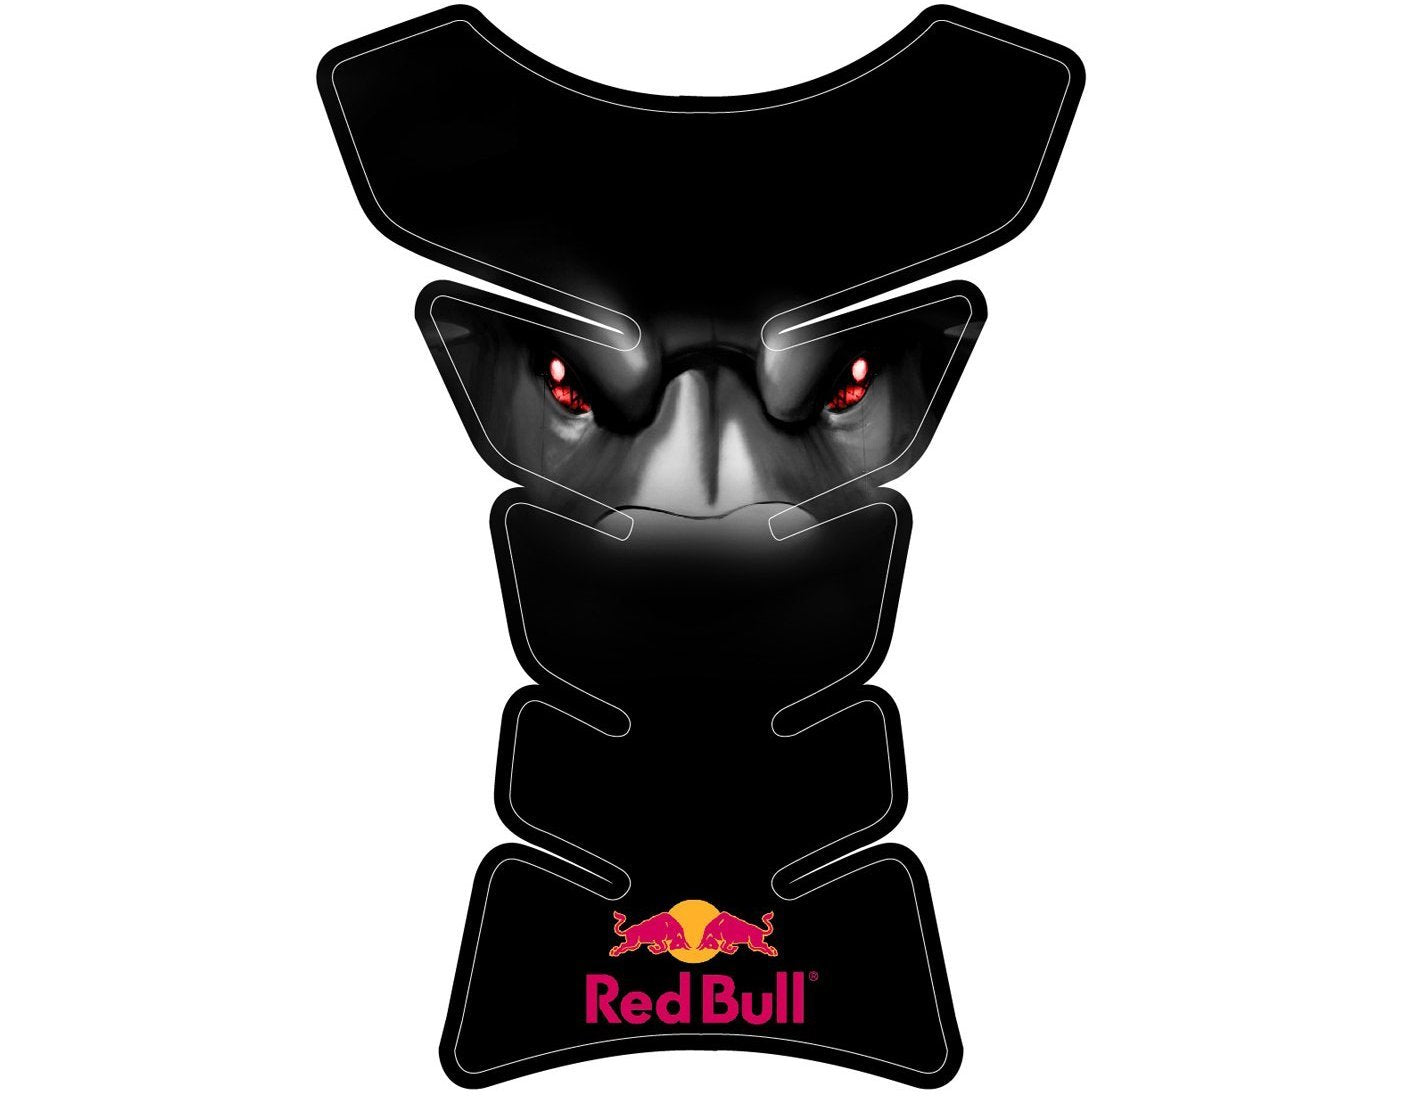 Red Bull universal motorcycle protector